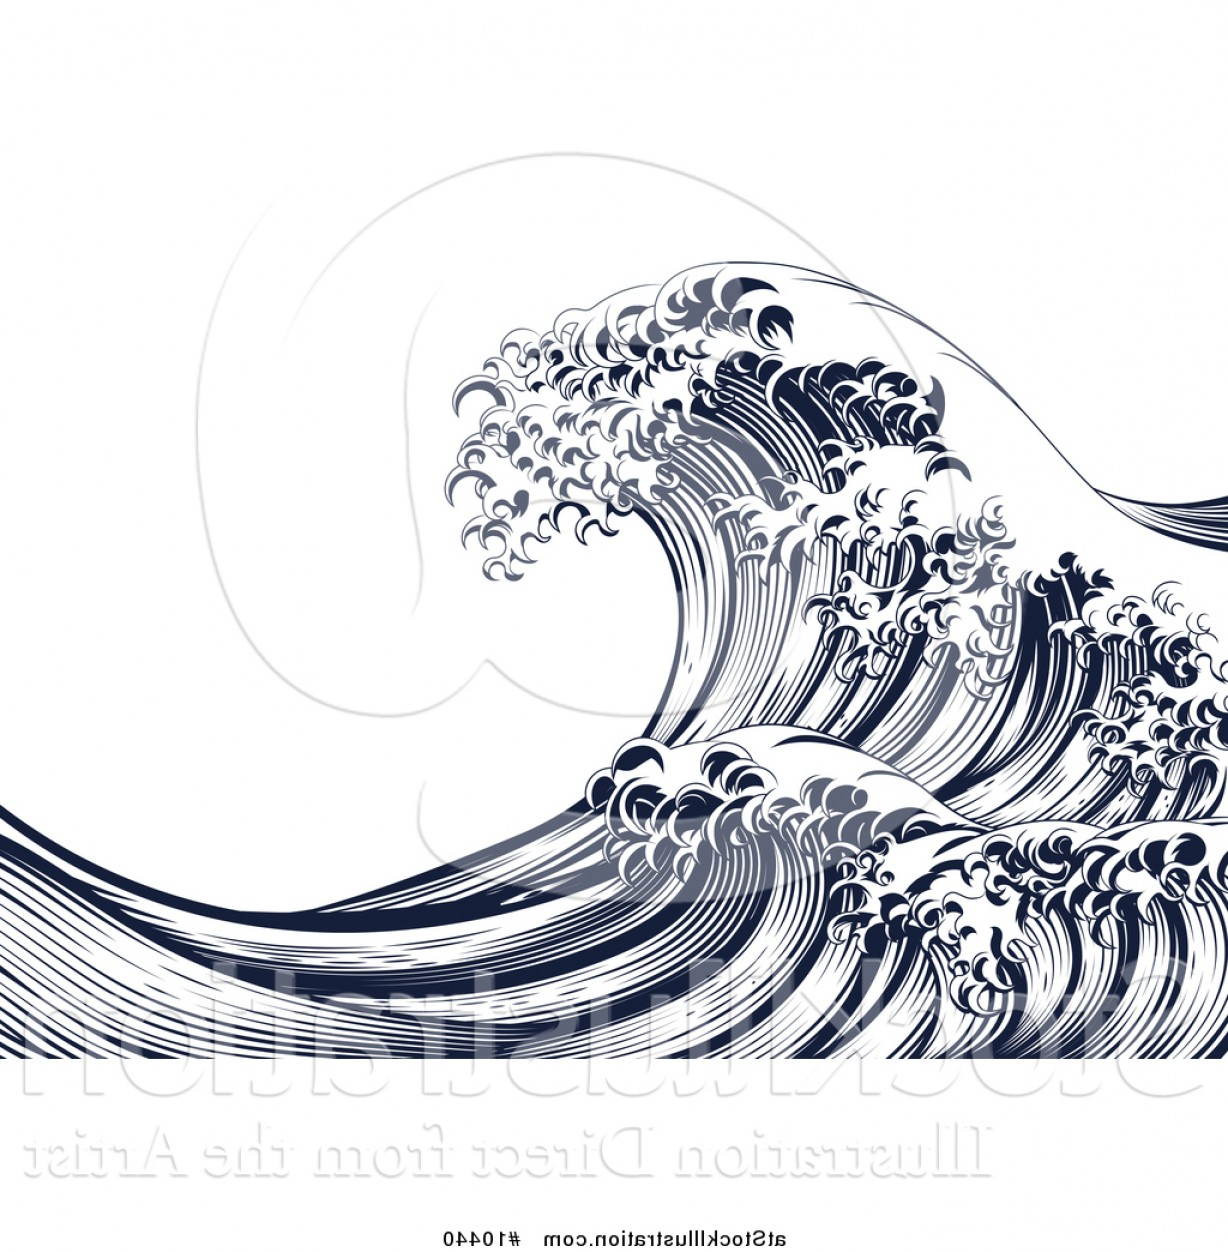 Ocean Wave Vector Illustration: Vector Illustration Of A Vintage Woodcut Engraved Japanese Styled Ocean Wave By Atstockillustration